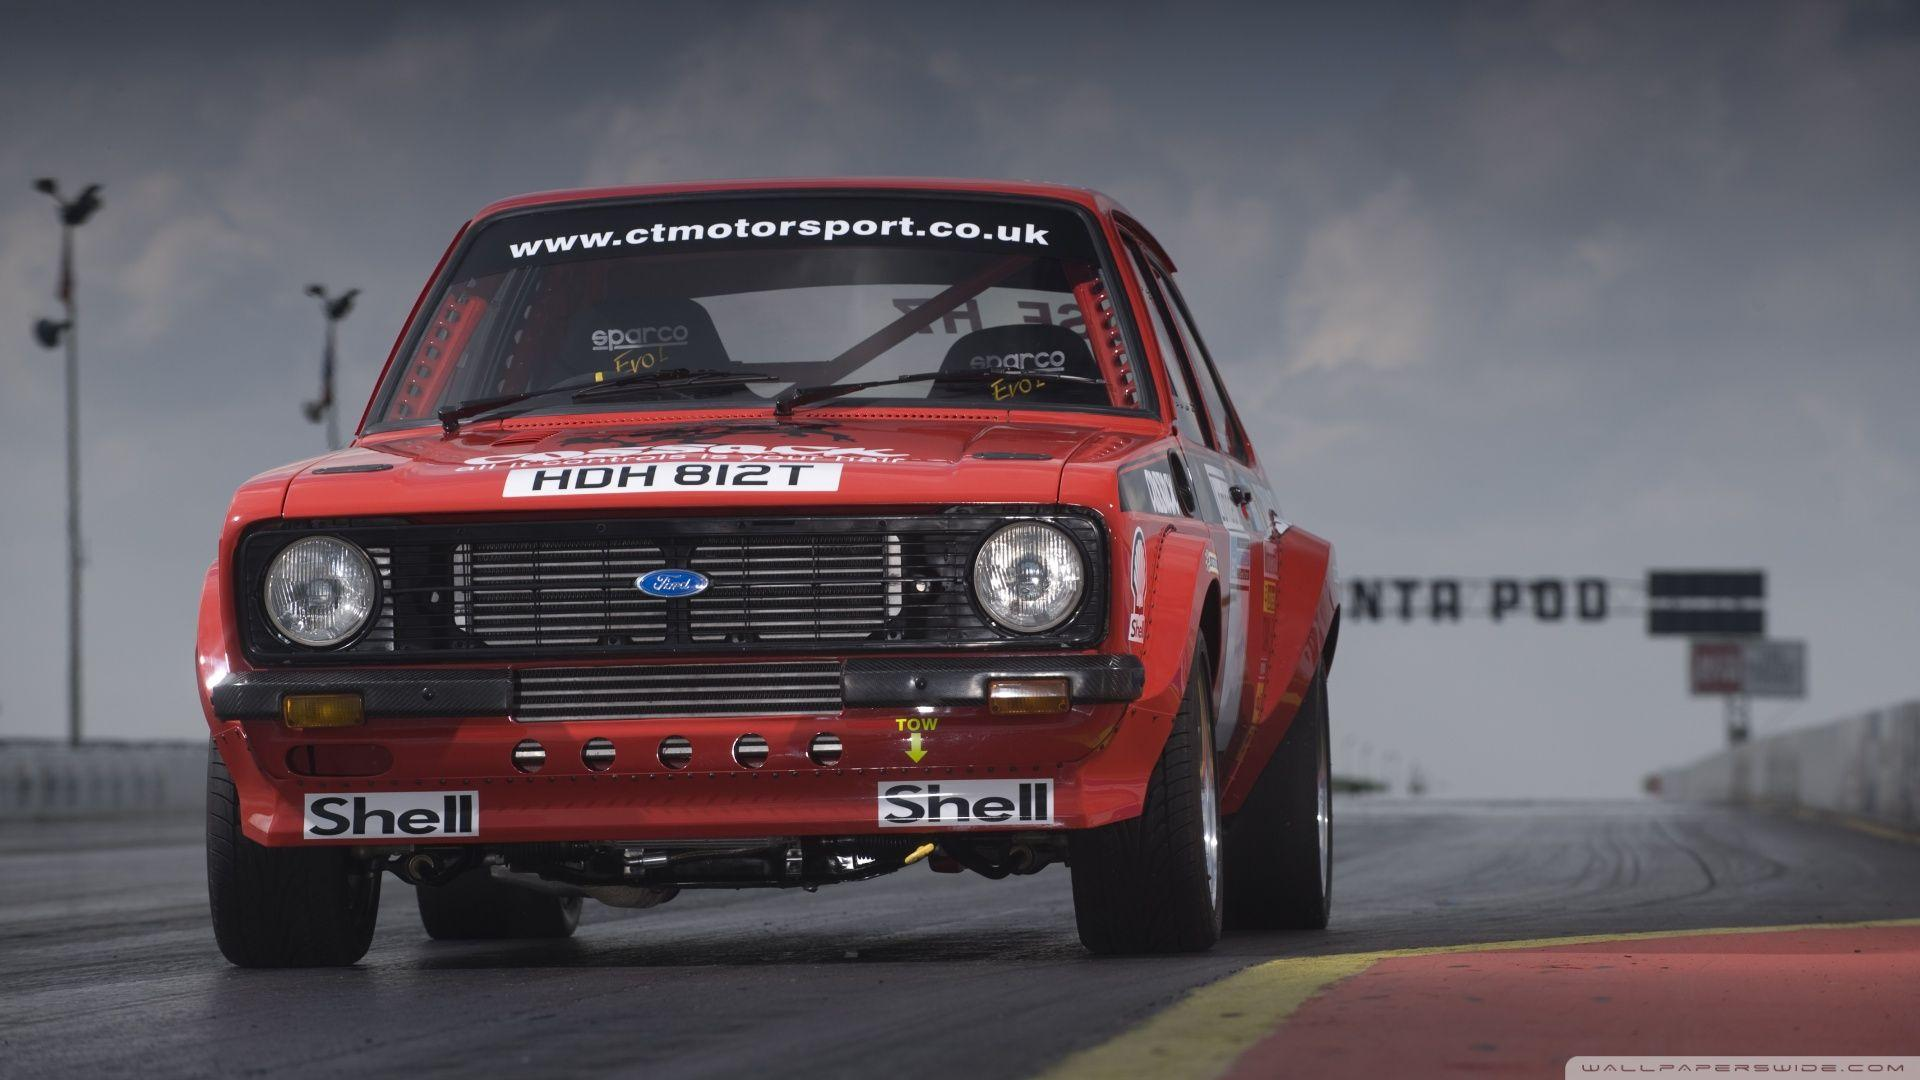 Ford Escort HD desktop wallpapers : Widescreen : High Definition